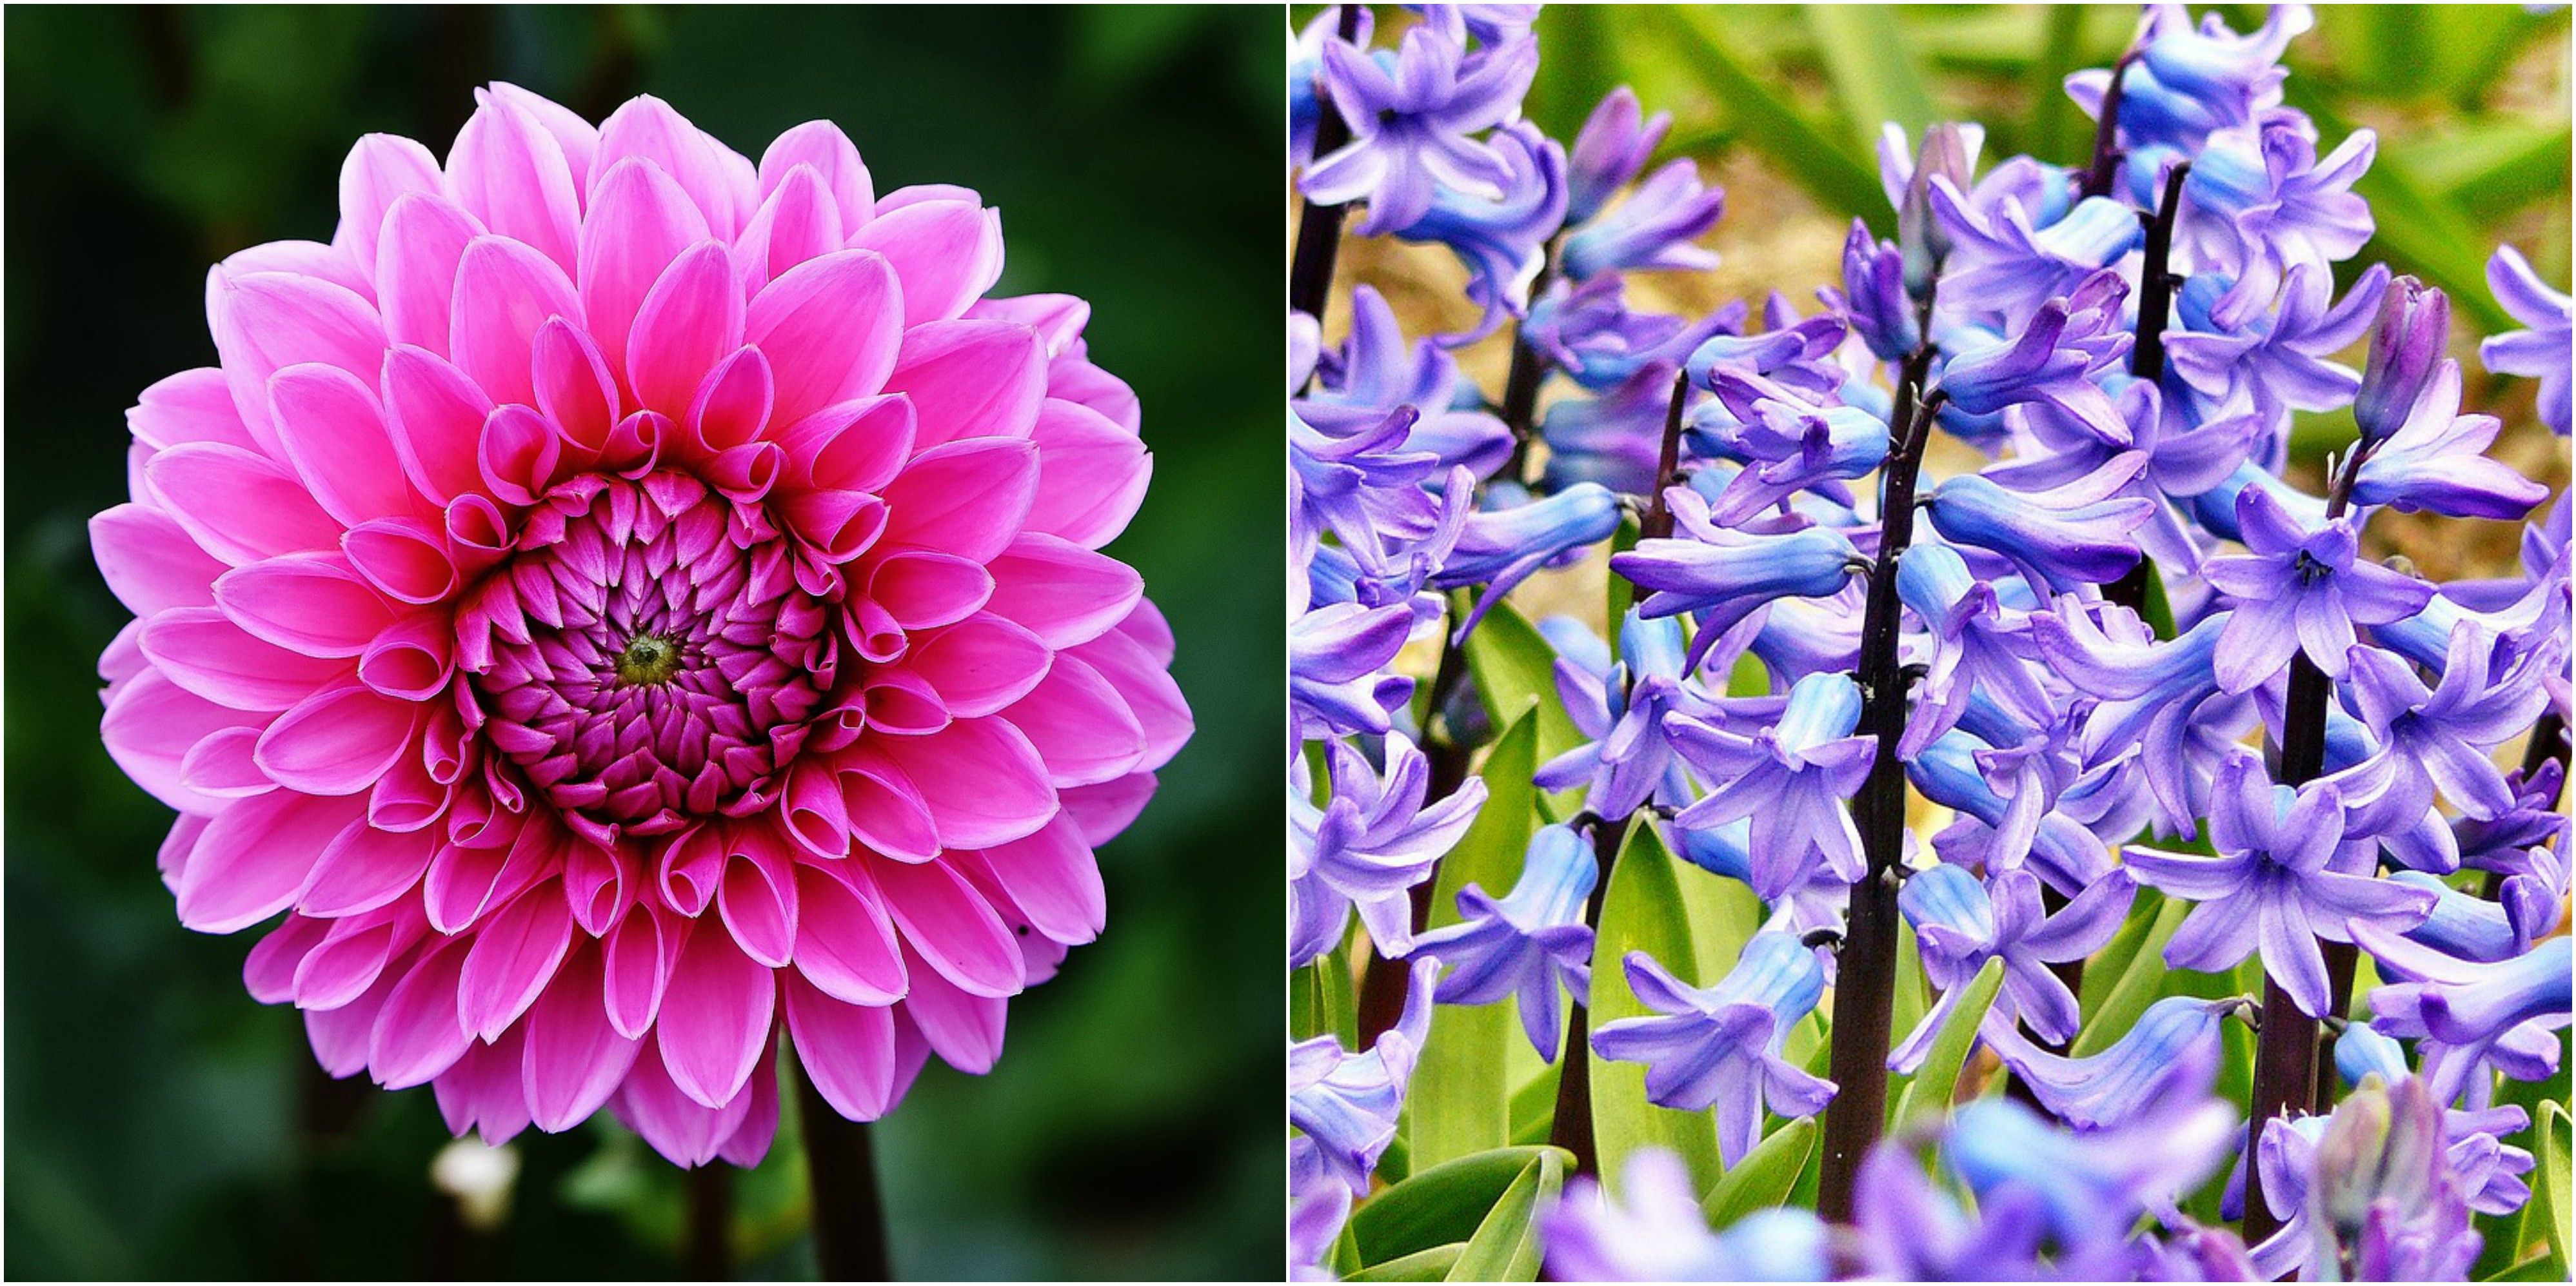 15 Flowers That Have Powerful Spiritual Connections To The